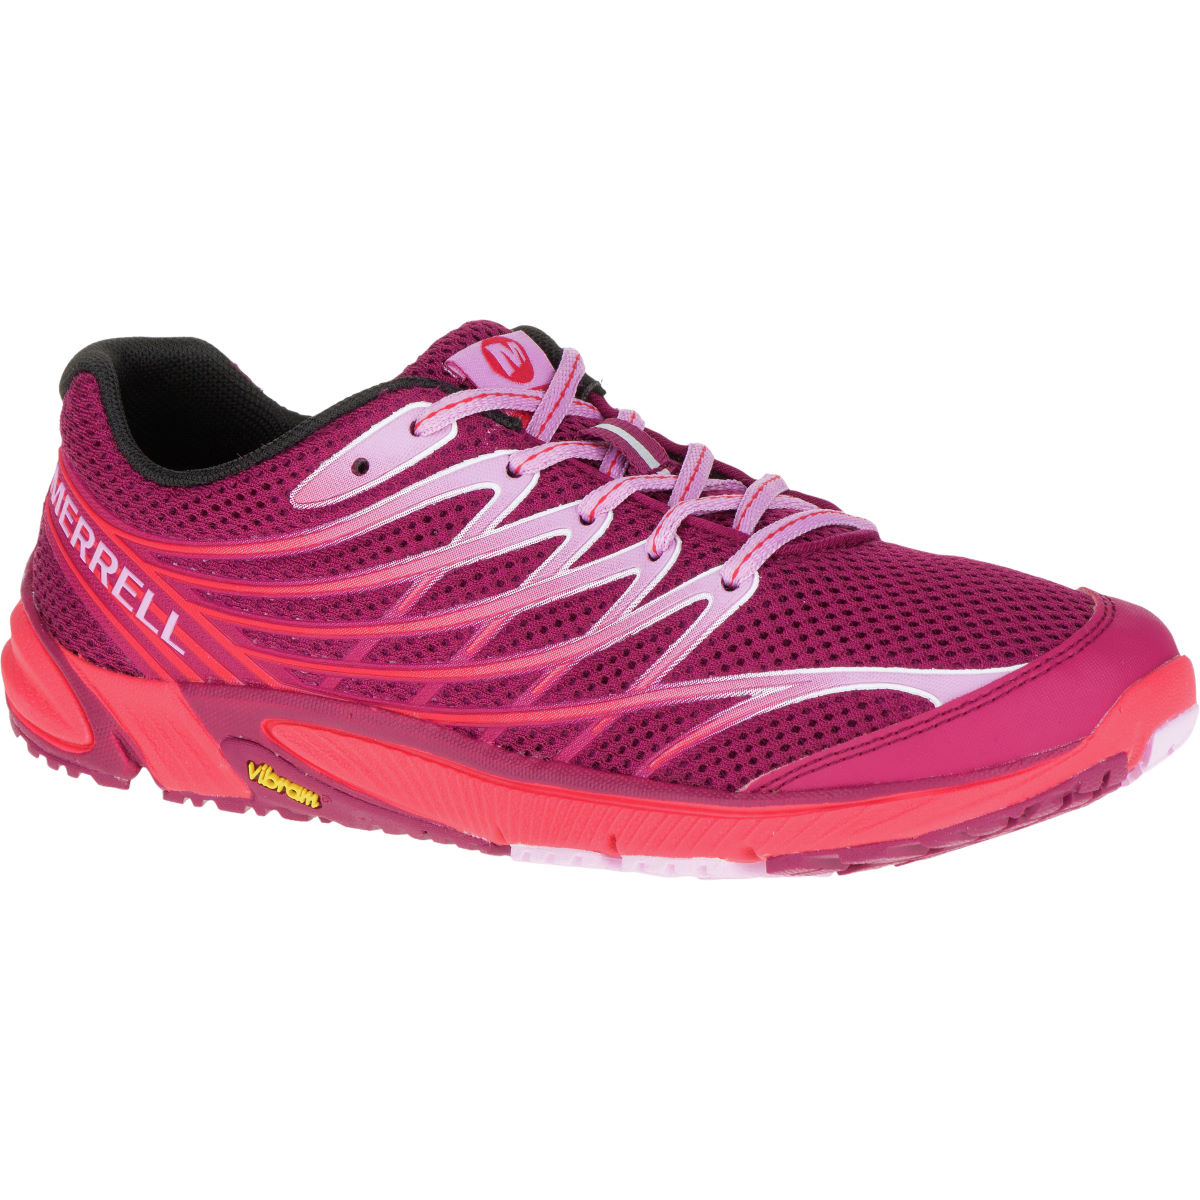 Merrell Women's Bare Access Arc 4 Shoes (SS16) - UK 5.5 Bright Red